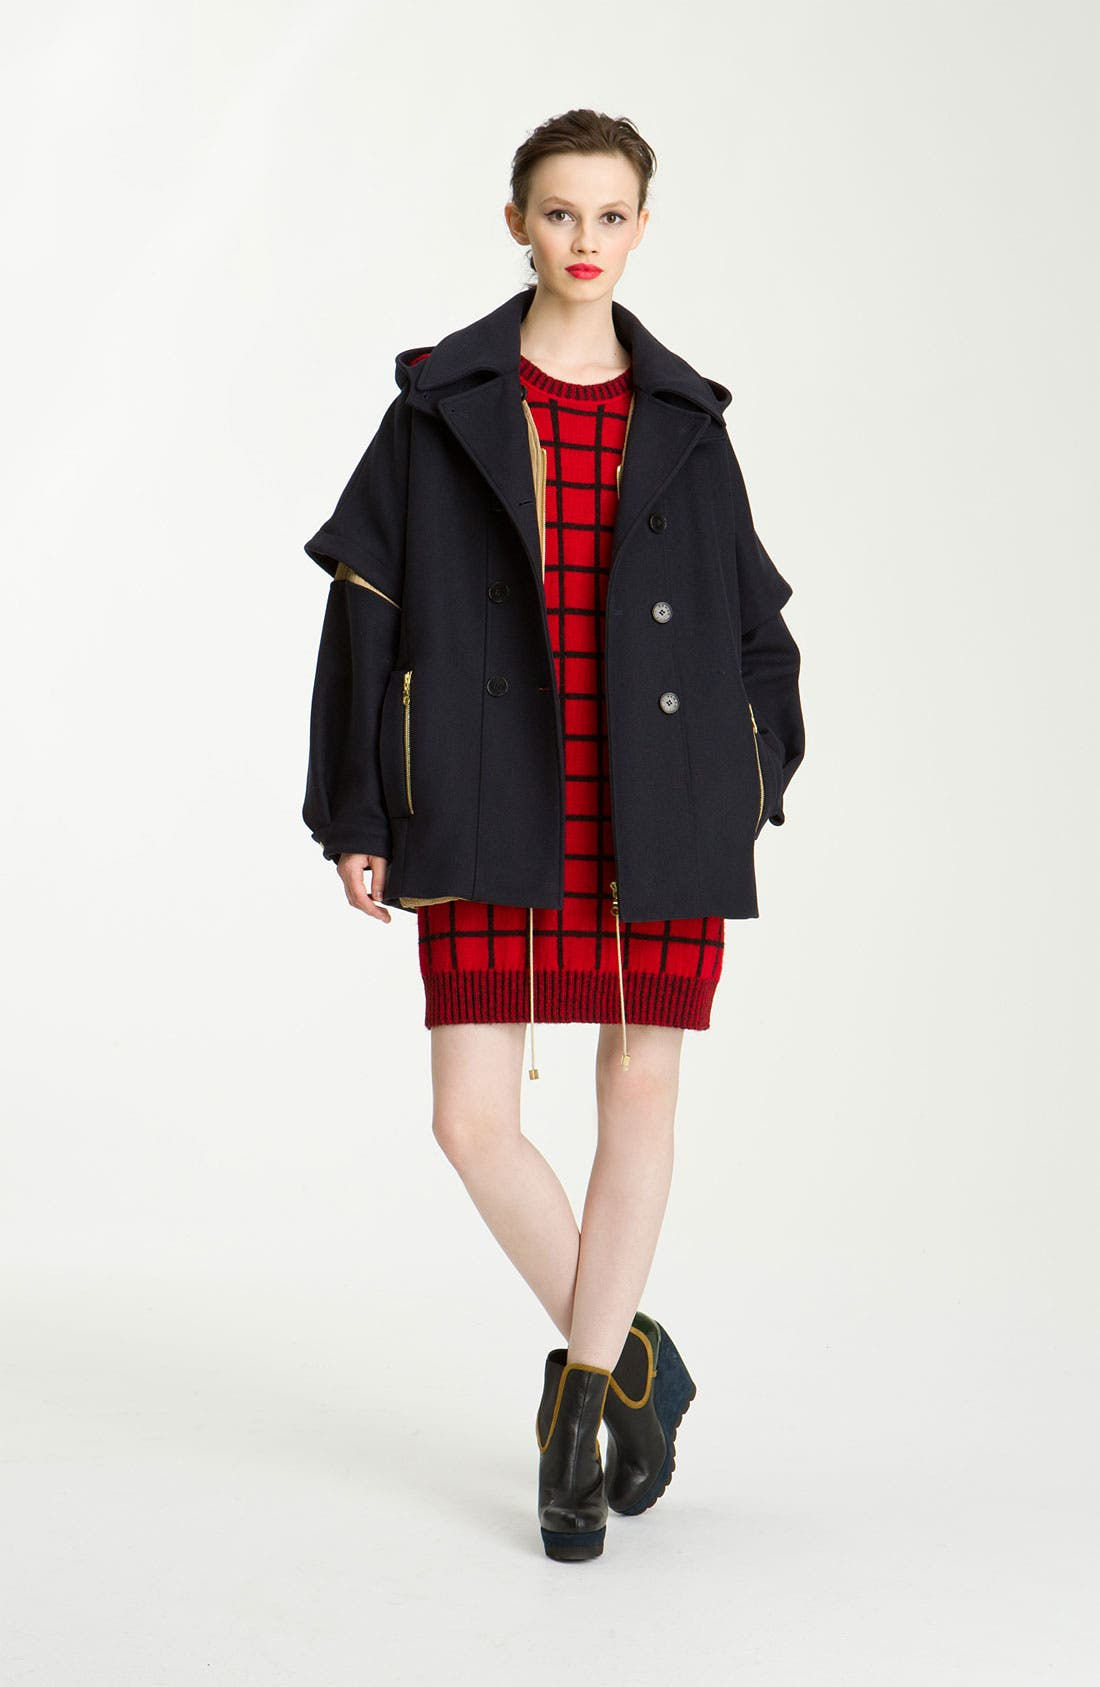 Alternate Image 1 Selected - KENZO 3-in-1 Double Breasted Wool Jacket